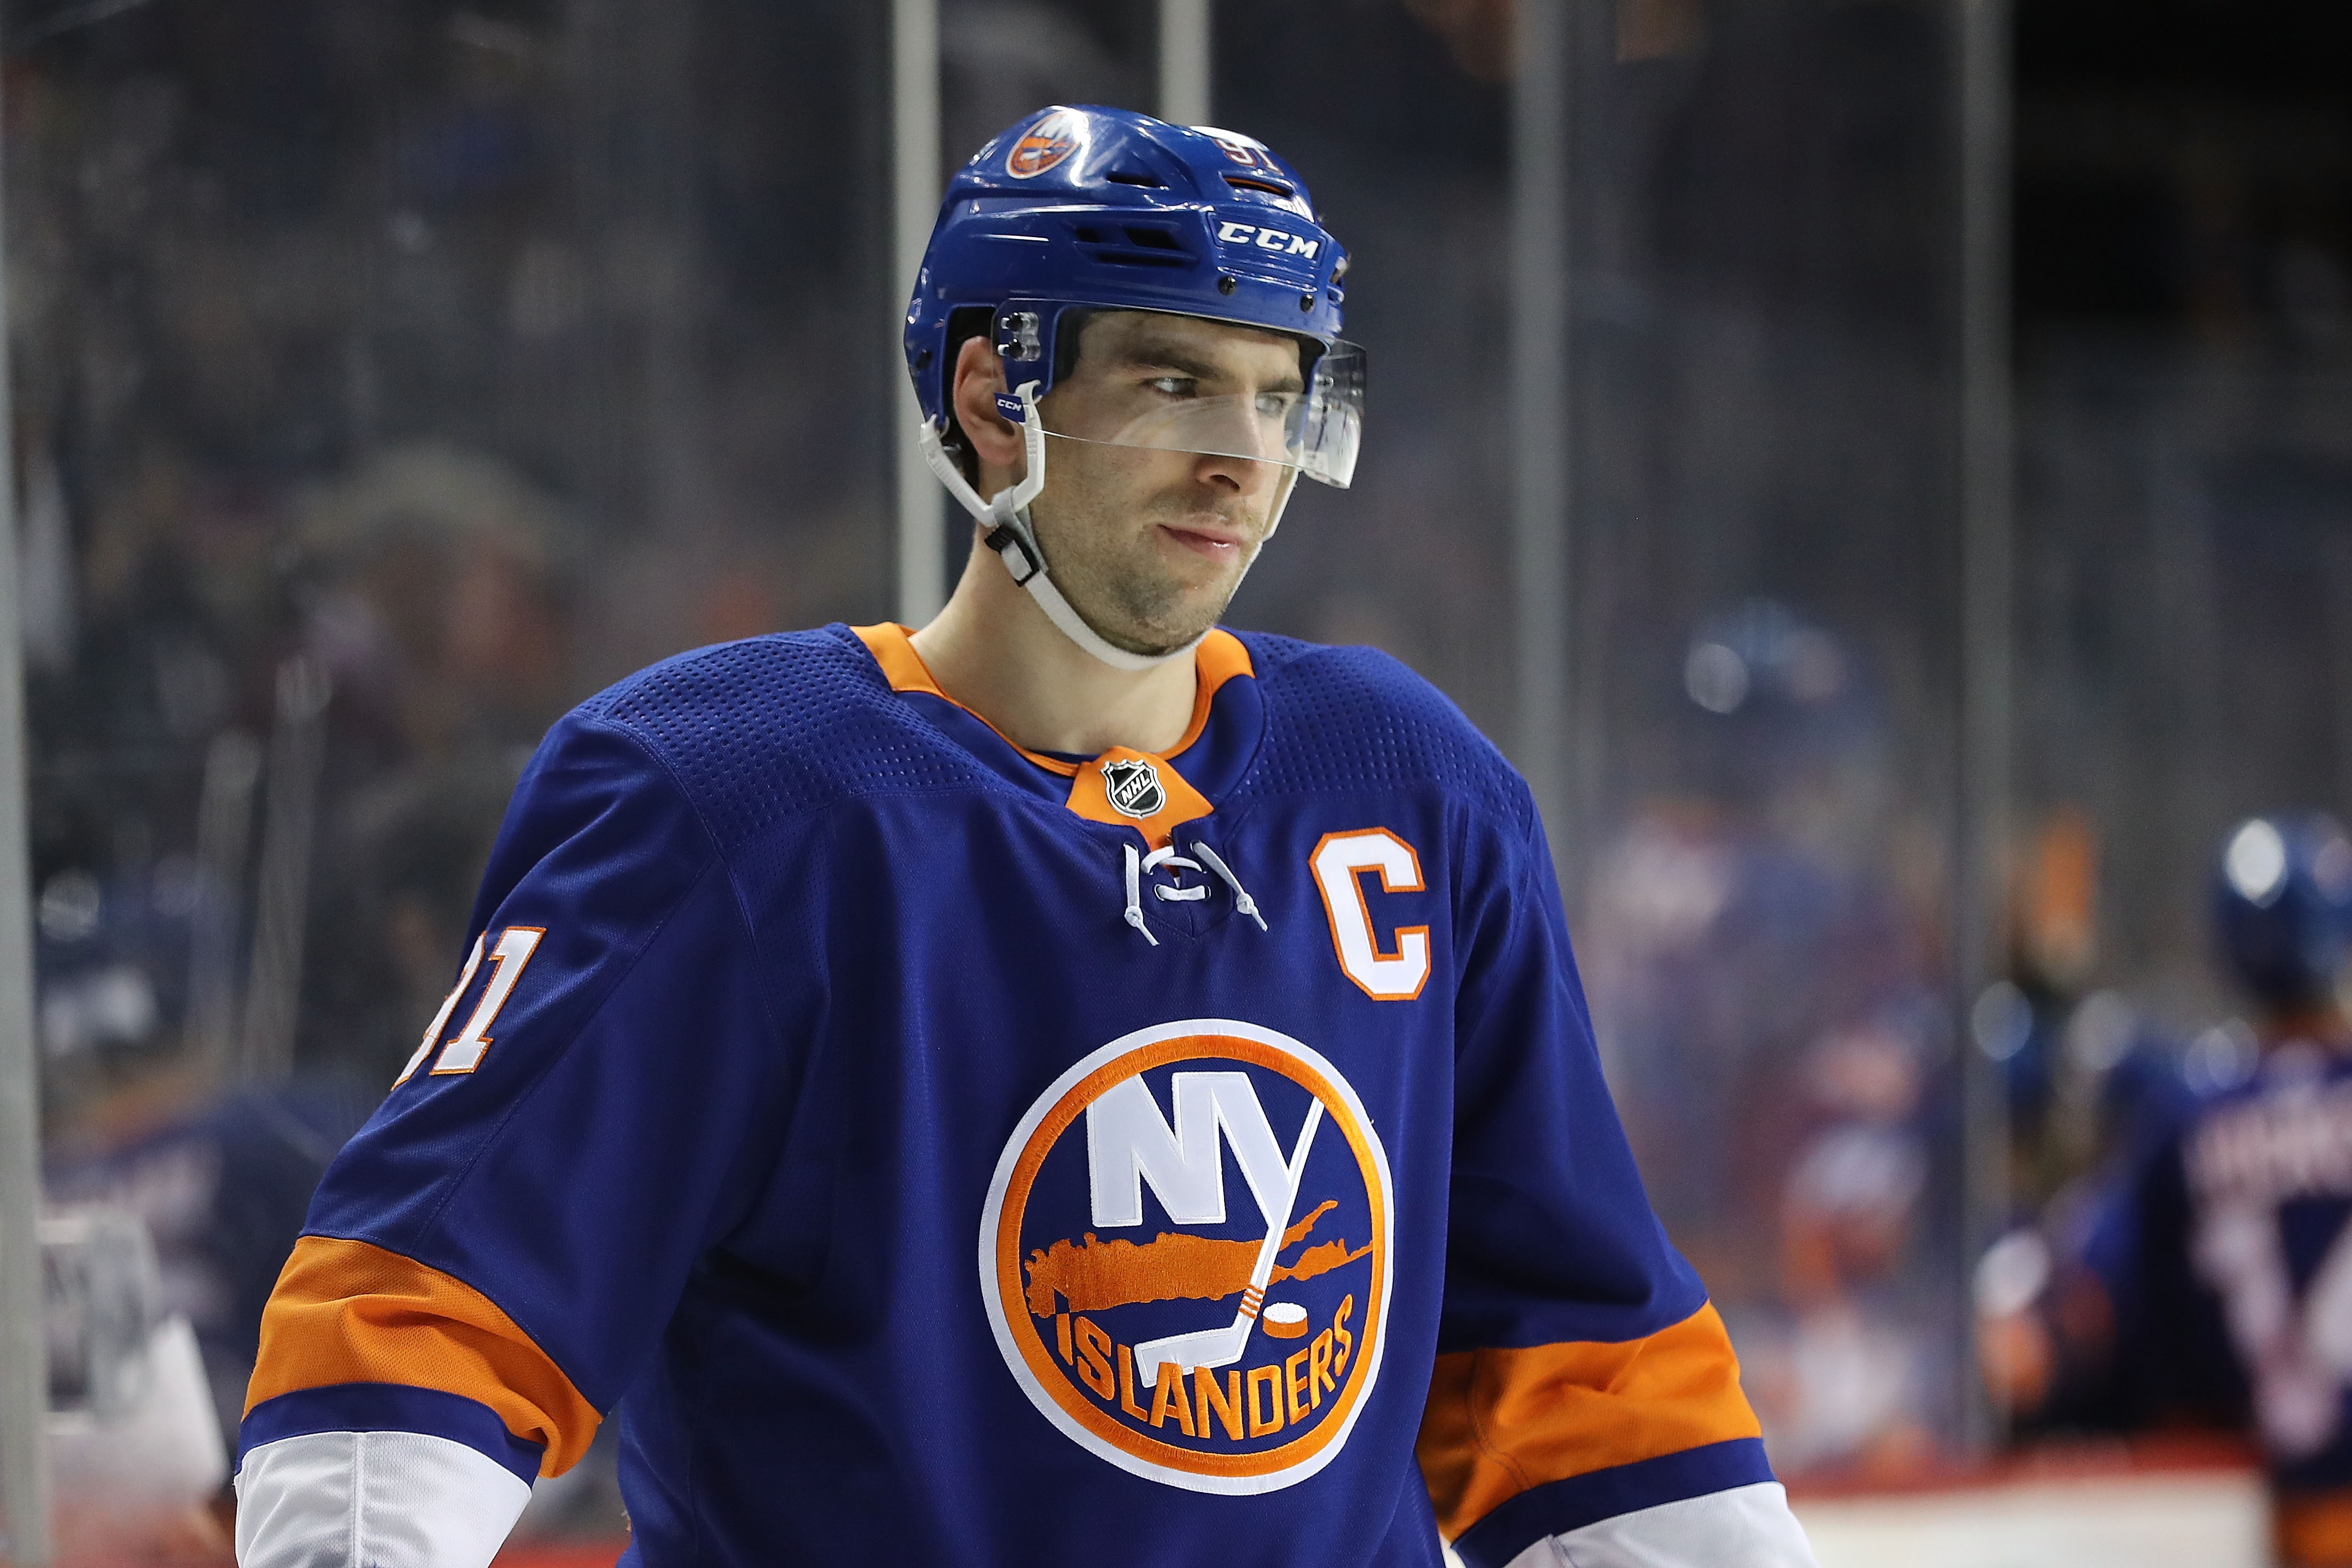 NEW YORK, NY - MARCH 26: John Tavares #91 of the New York Islanders reacts in the third period against the Florida Panthers during their game at Barclays Center on March 26, 2018 in the Brooklyn borough of New York City.